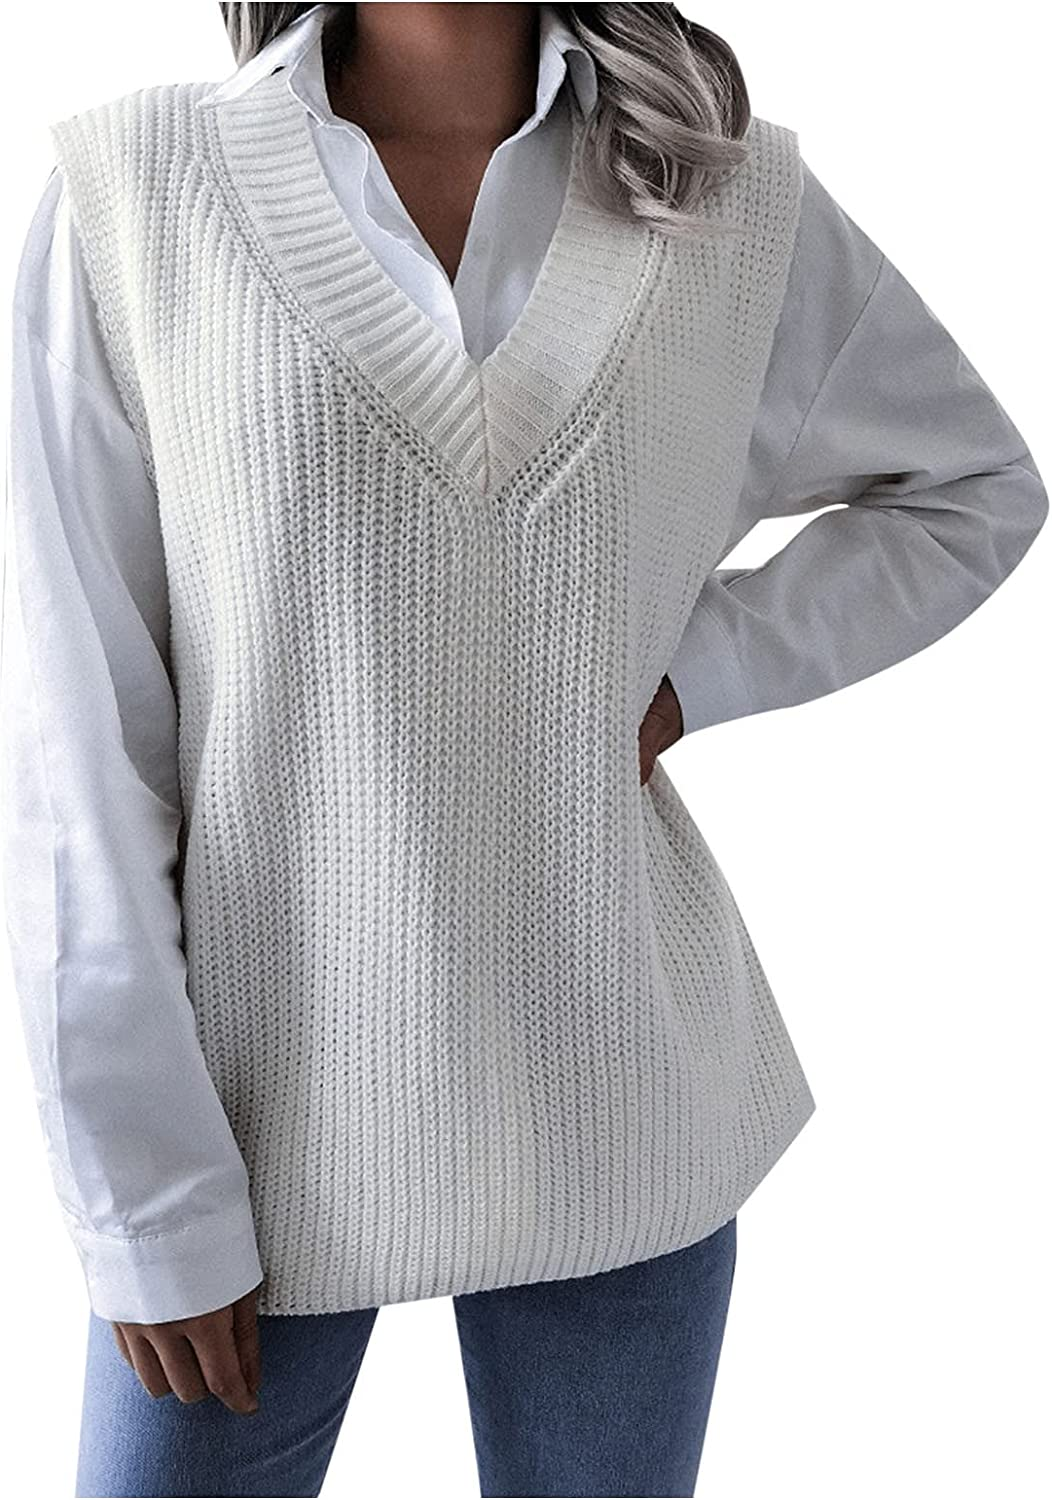 New Womens V Neck Sweater Vest Knitted Oversized Sleeveless Knitwear Casual Pullover Jumpers Tank Tops